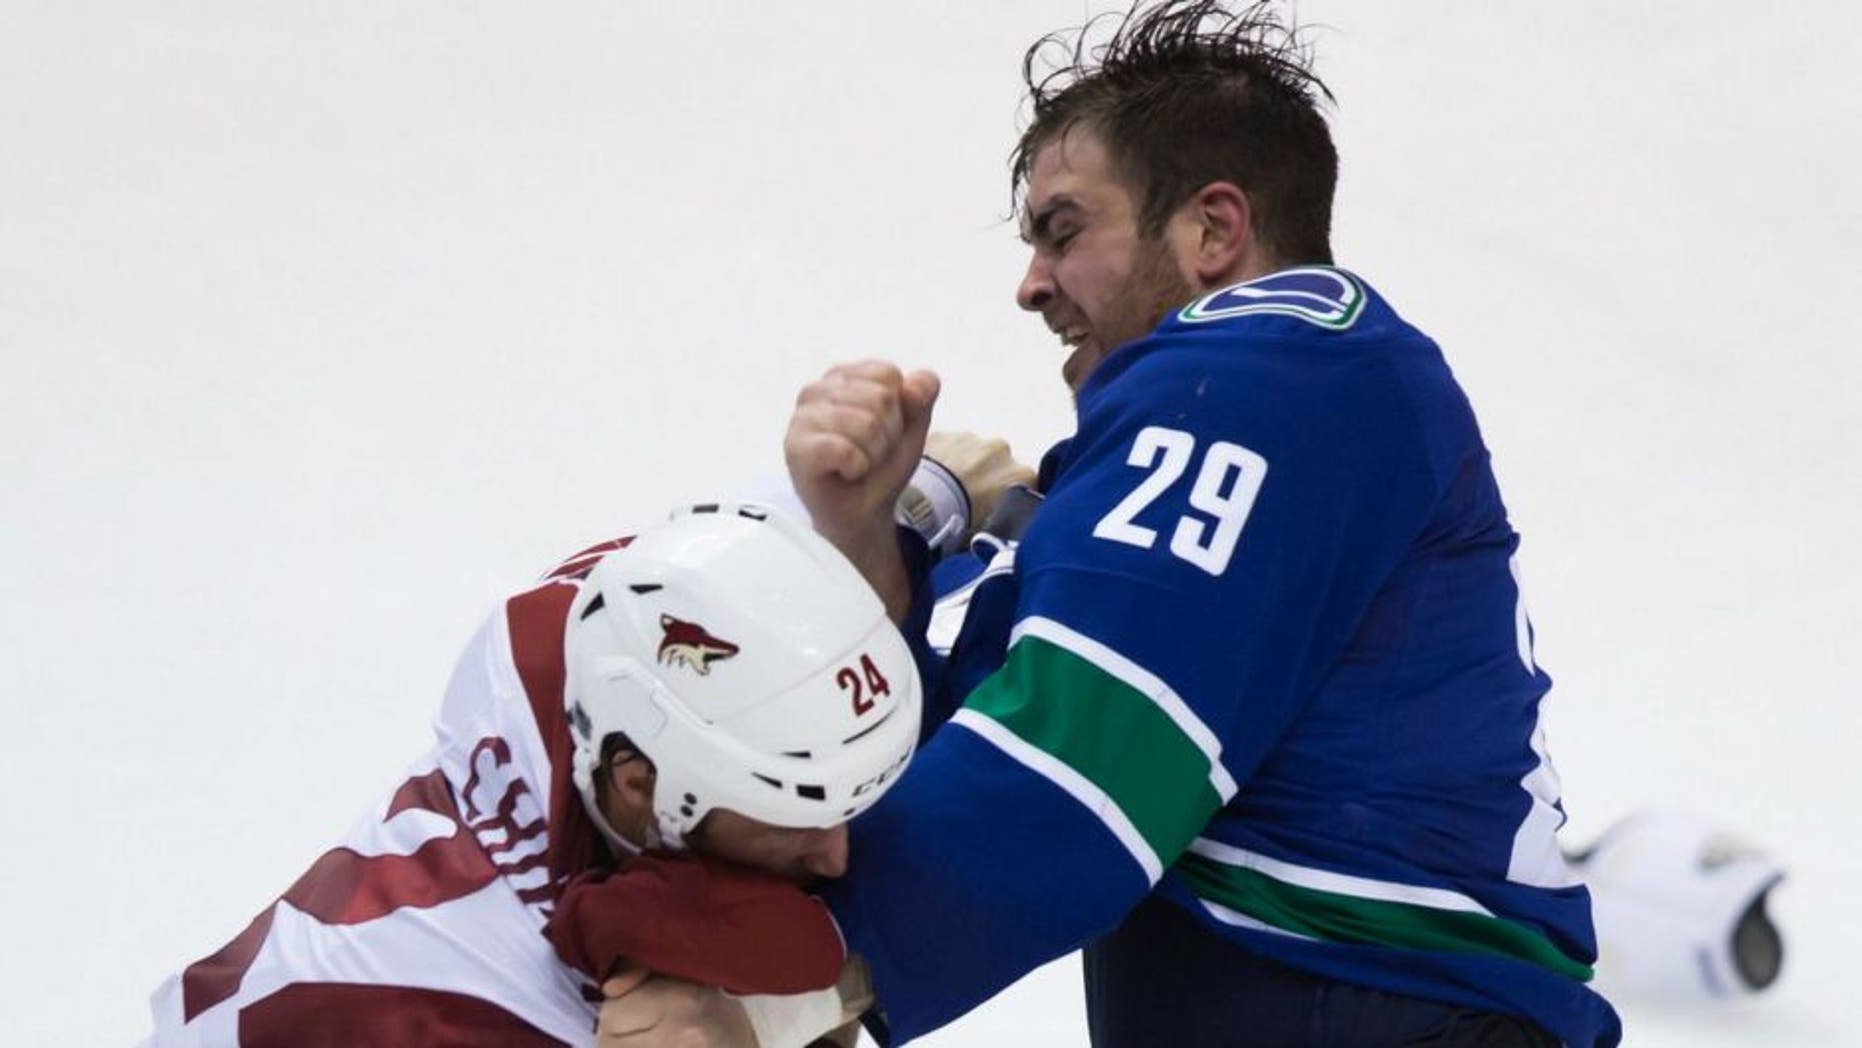 Vancouver Canucks' Tom Sestito, right, and Arizona Coyotes' Kyle Chipchura fight during the second period of an NHL hockey game in Vancouver, British Columbia, Monday, Dec. 22, 2014. (AP Photo/The Canadian Press, Darryl Dyck)